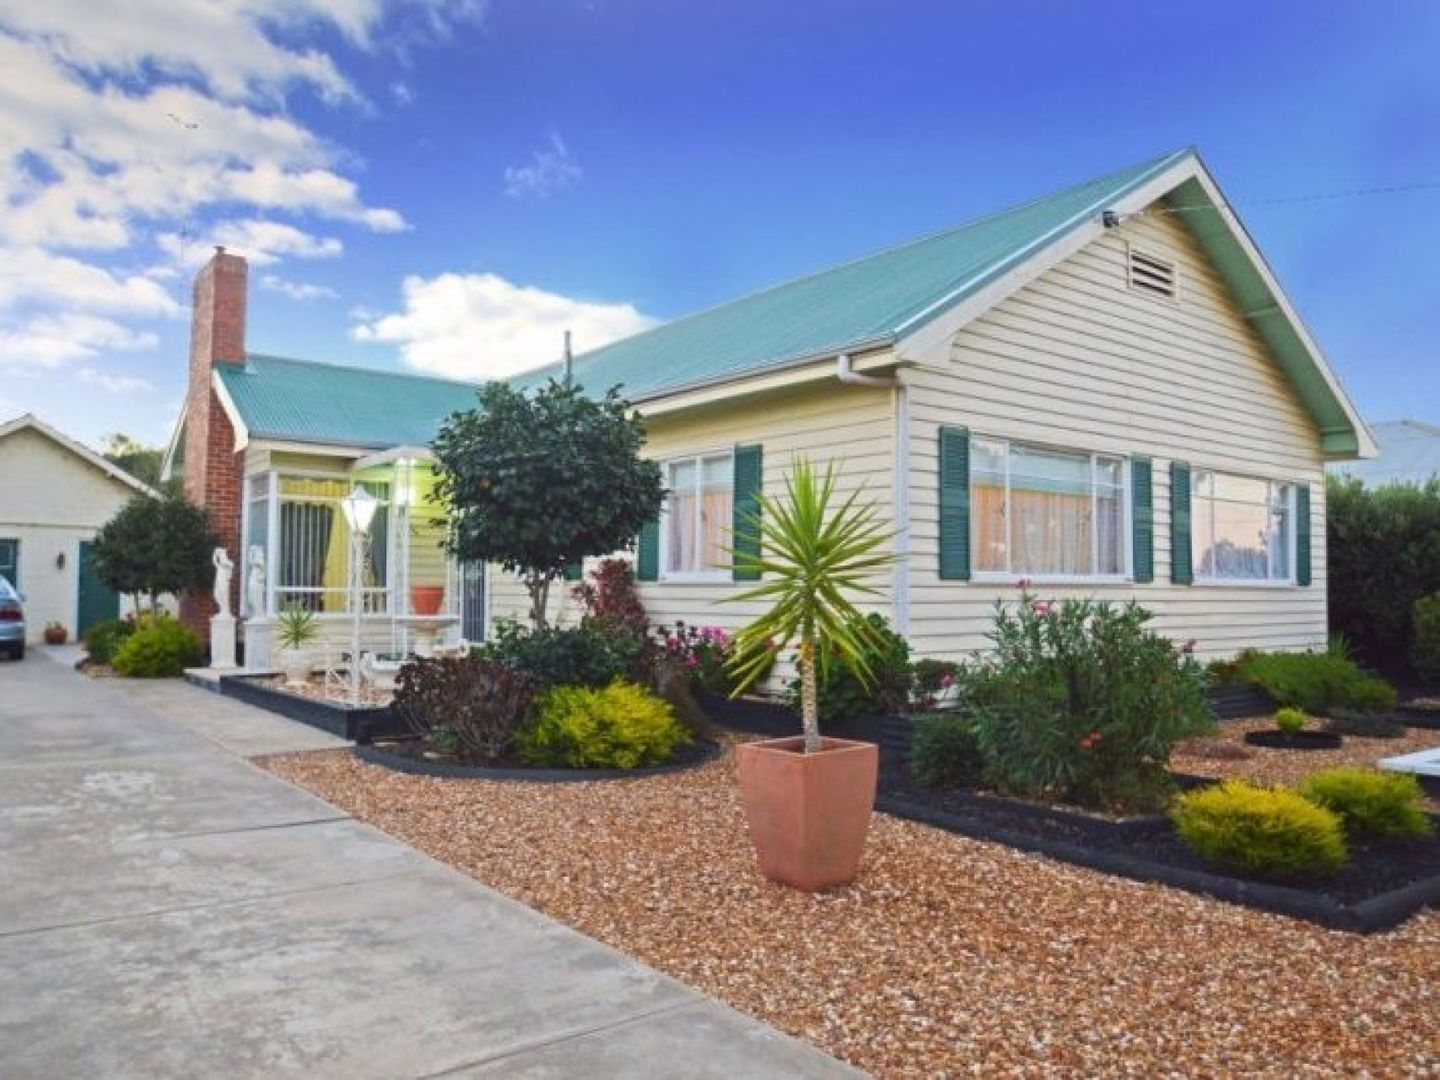 105 Inkerman Street Maryborough VIC 3465 Image 0